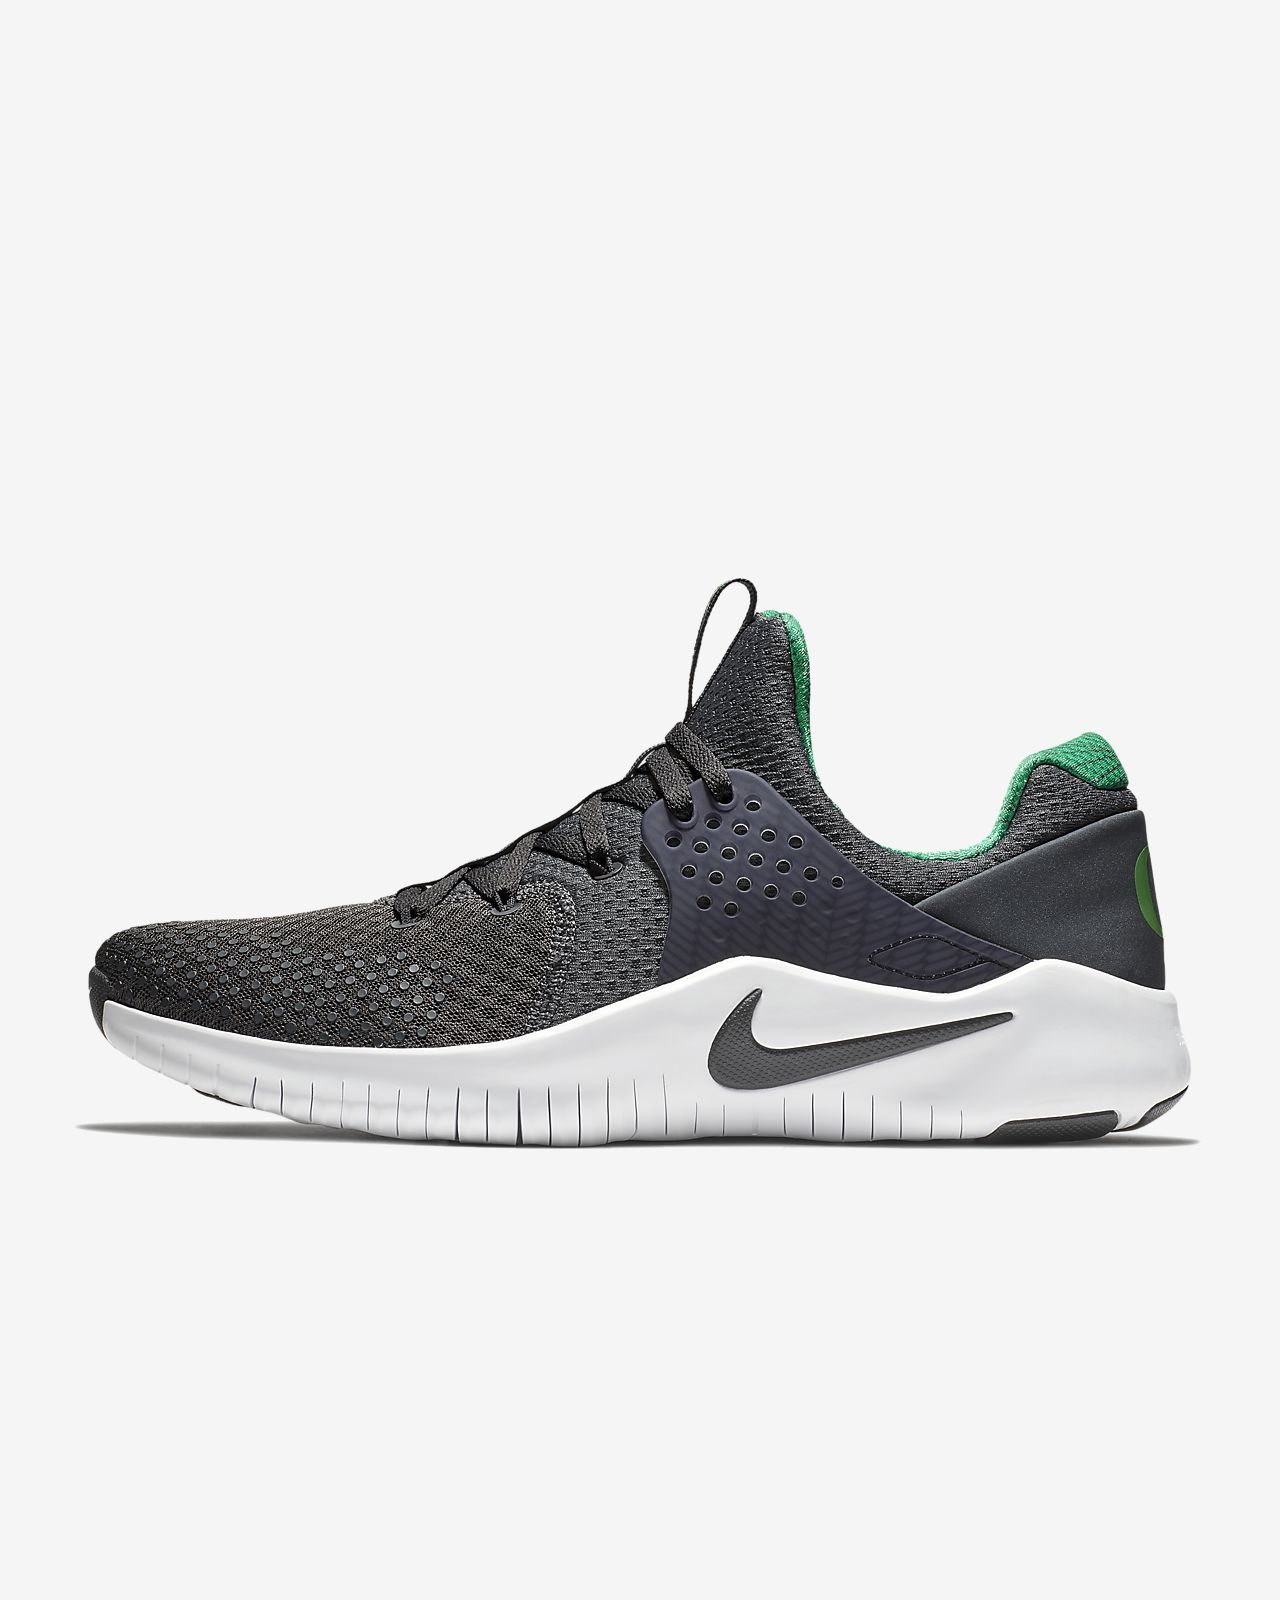 9cdeb50dc9f2 Nike Free TR8 (Oregon) Gym Gameday Shoe. Nike.com